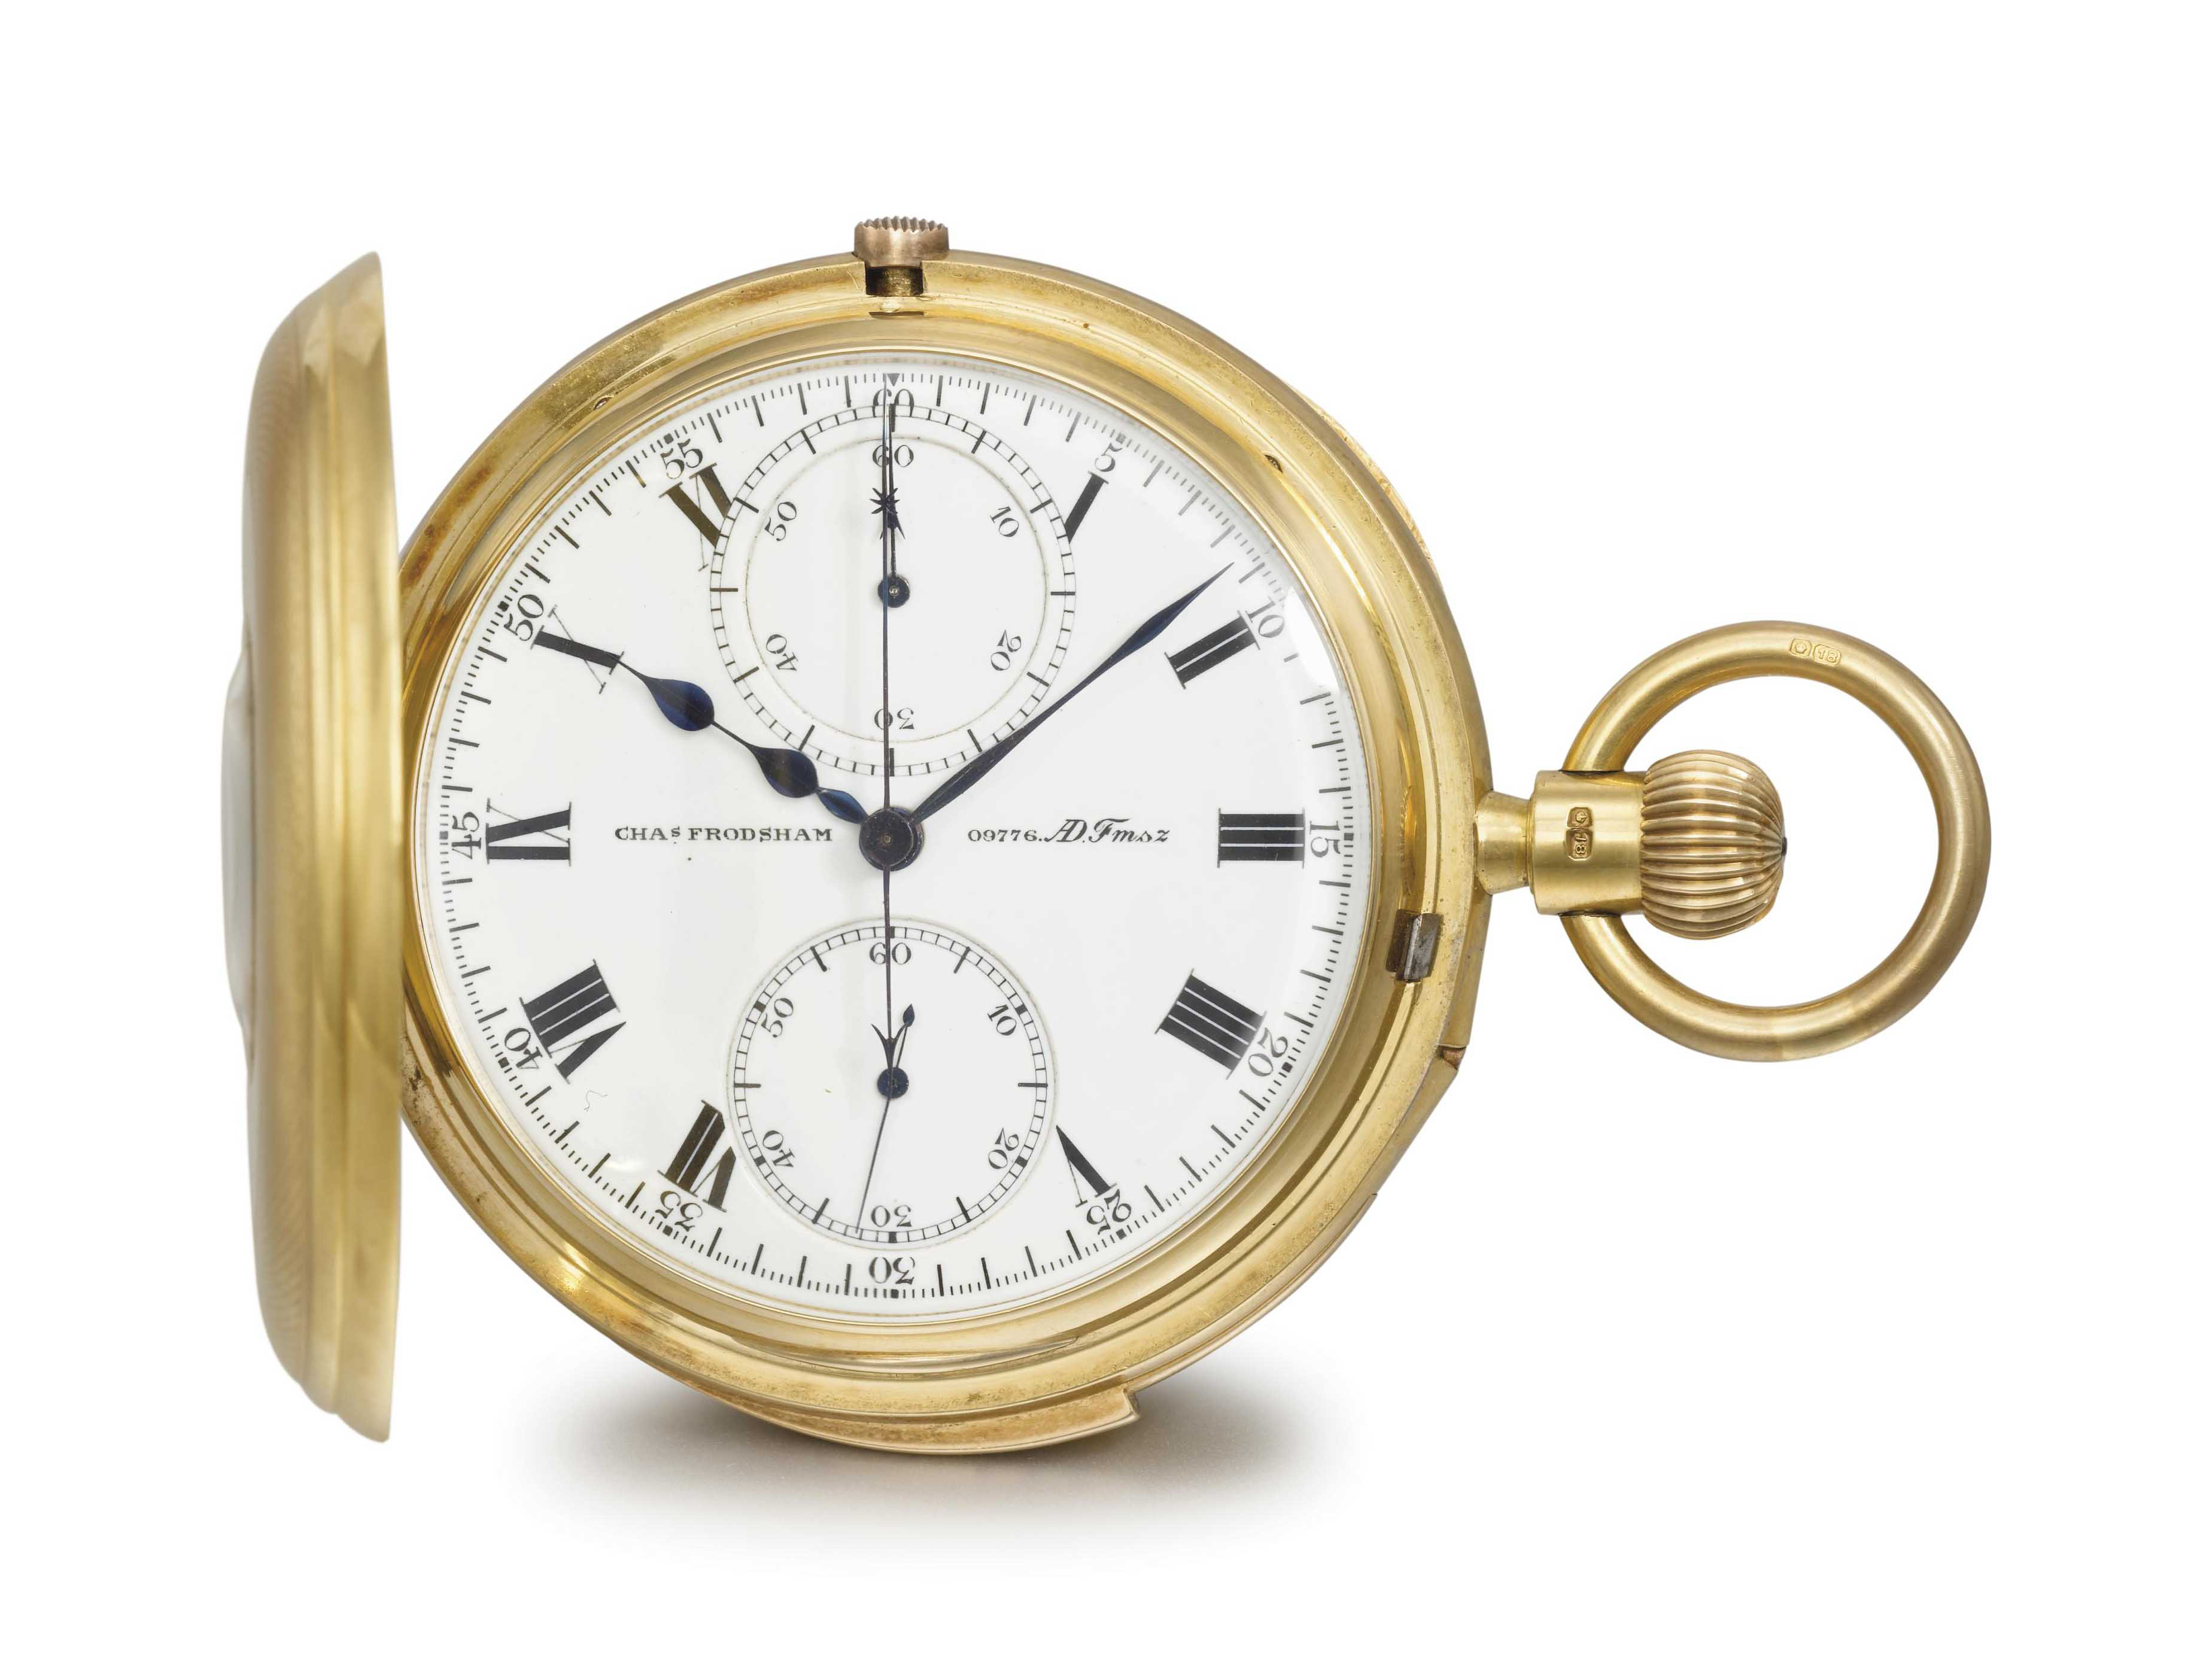 Charles Frodsham. A fine and rare 18K gold half hunter case minute repeating chronograph keyless lever watch